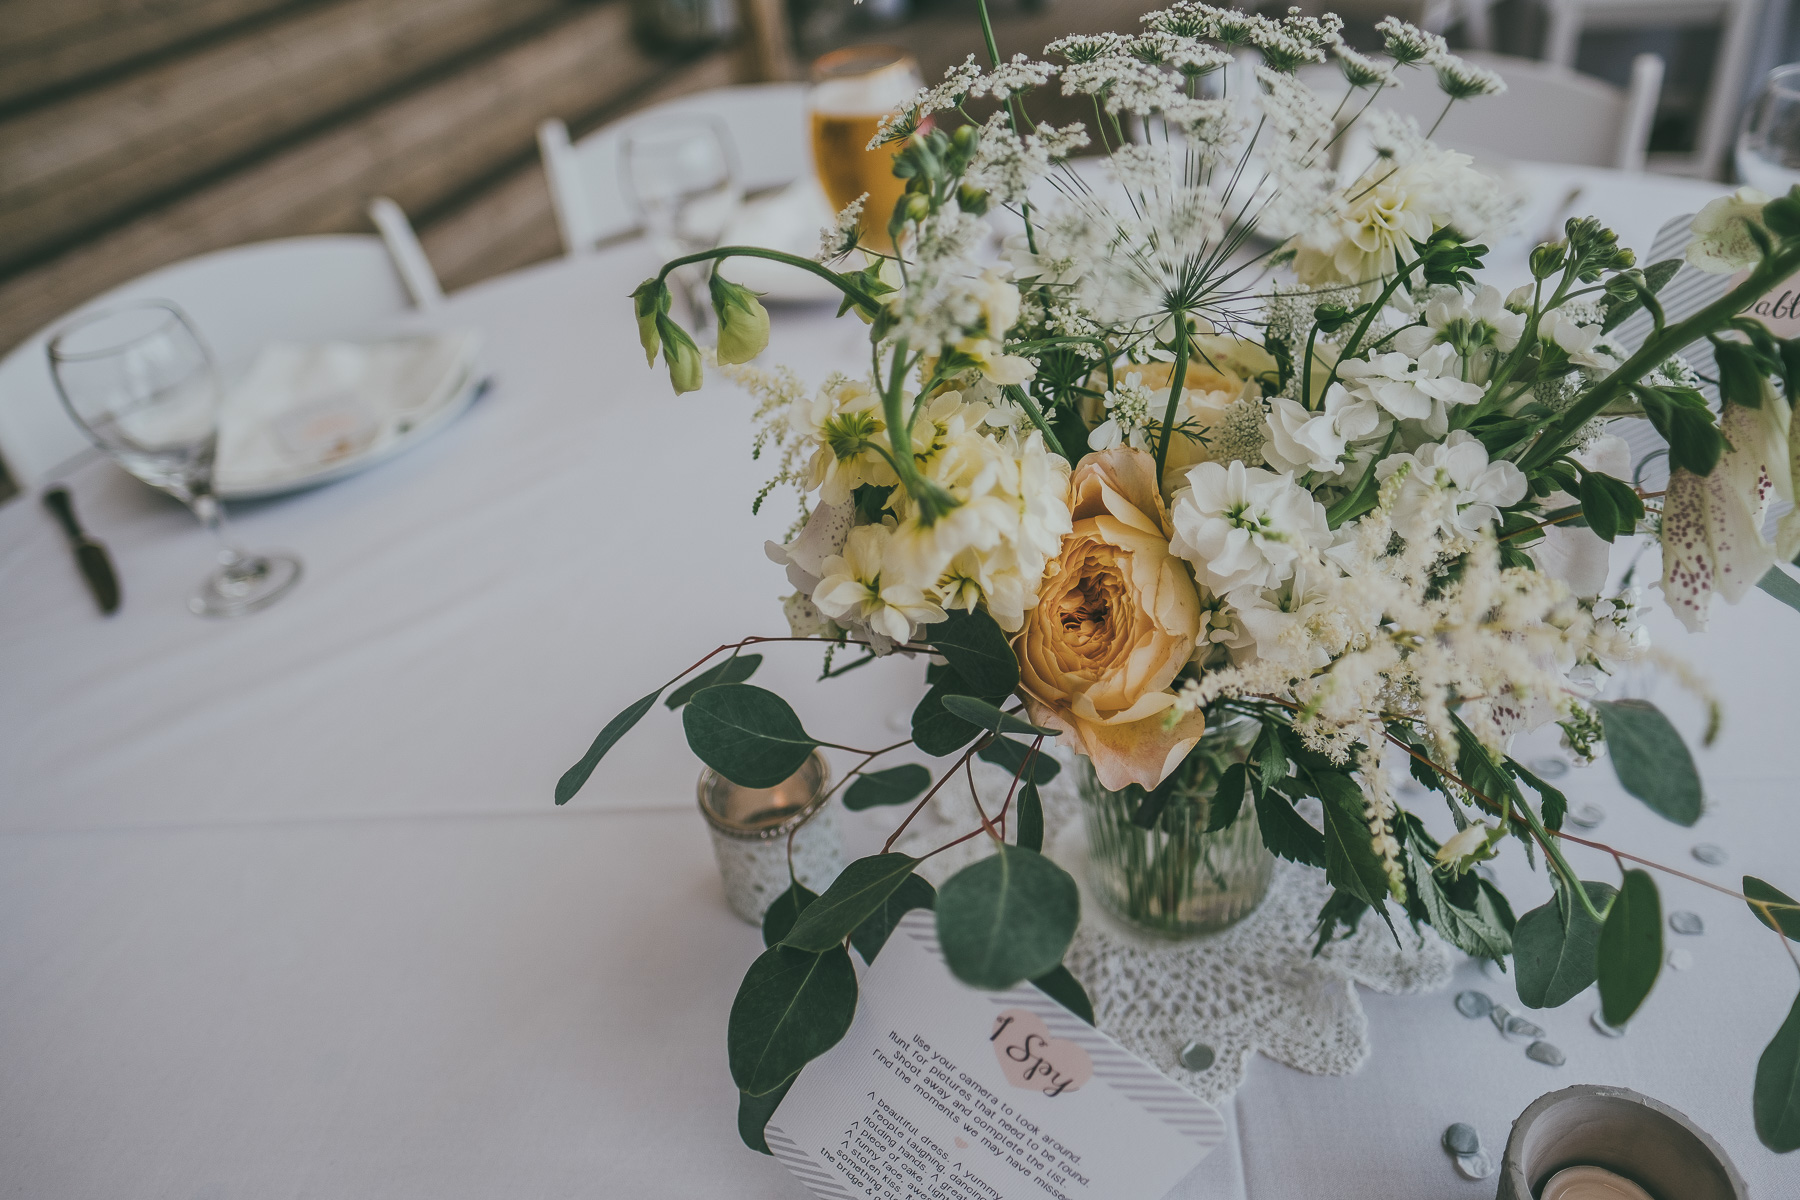 neutral reception table decor works for any style wedding